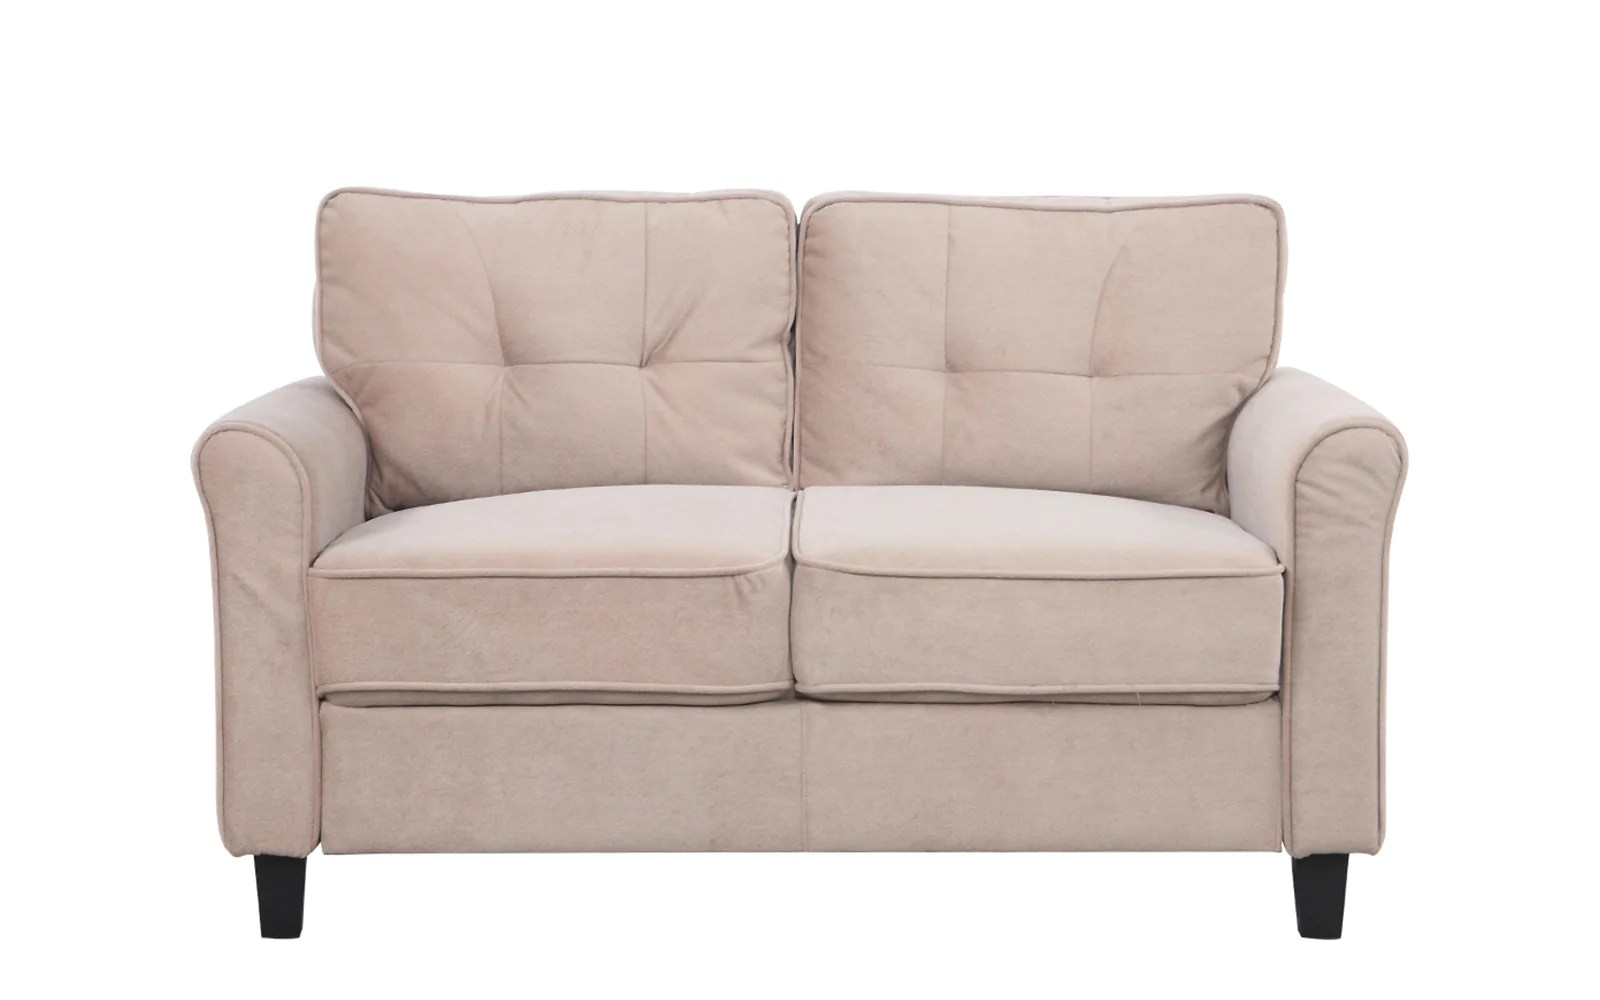 Eichholtz Sessel Loveseat Sofa Best Interior Furniture